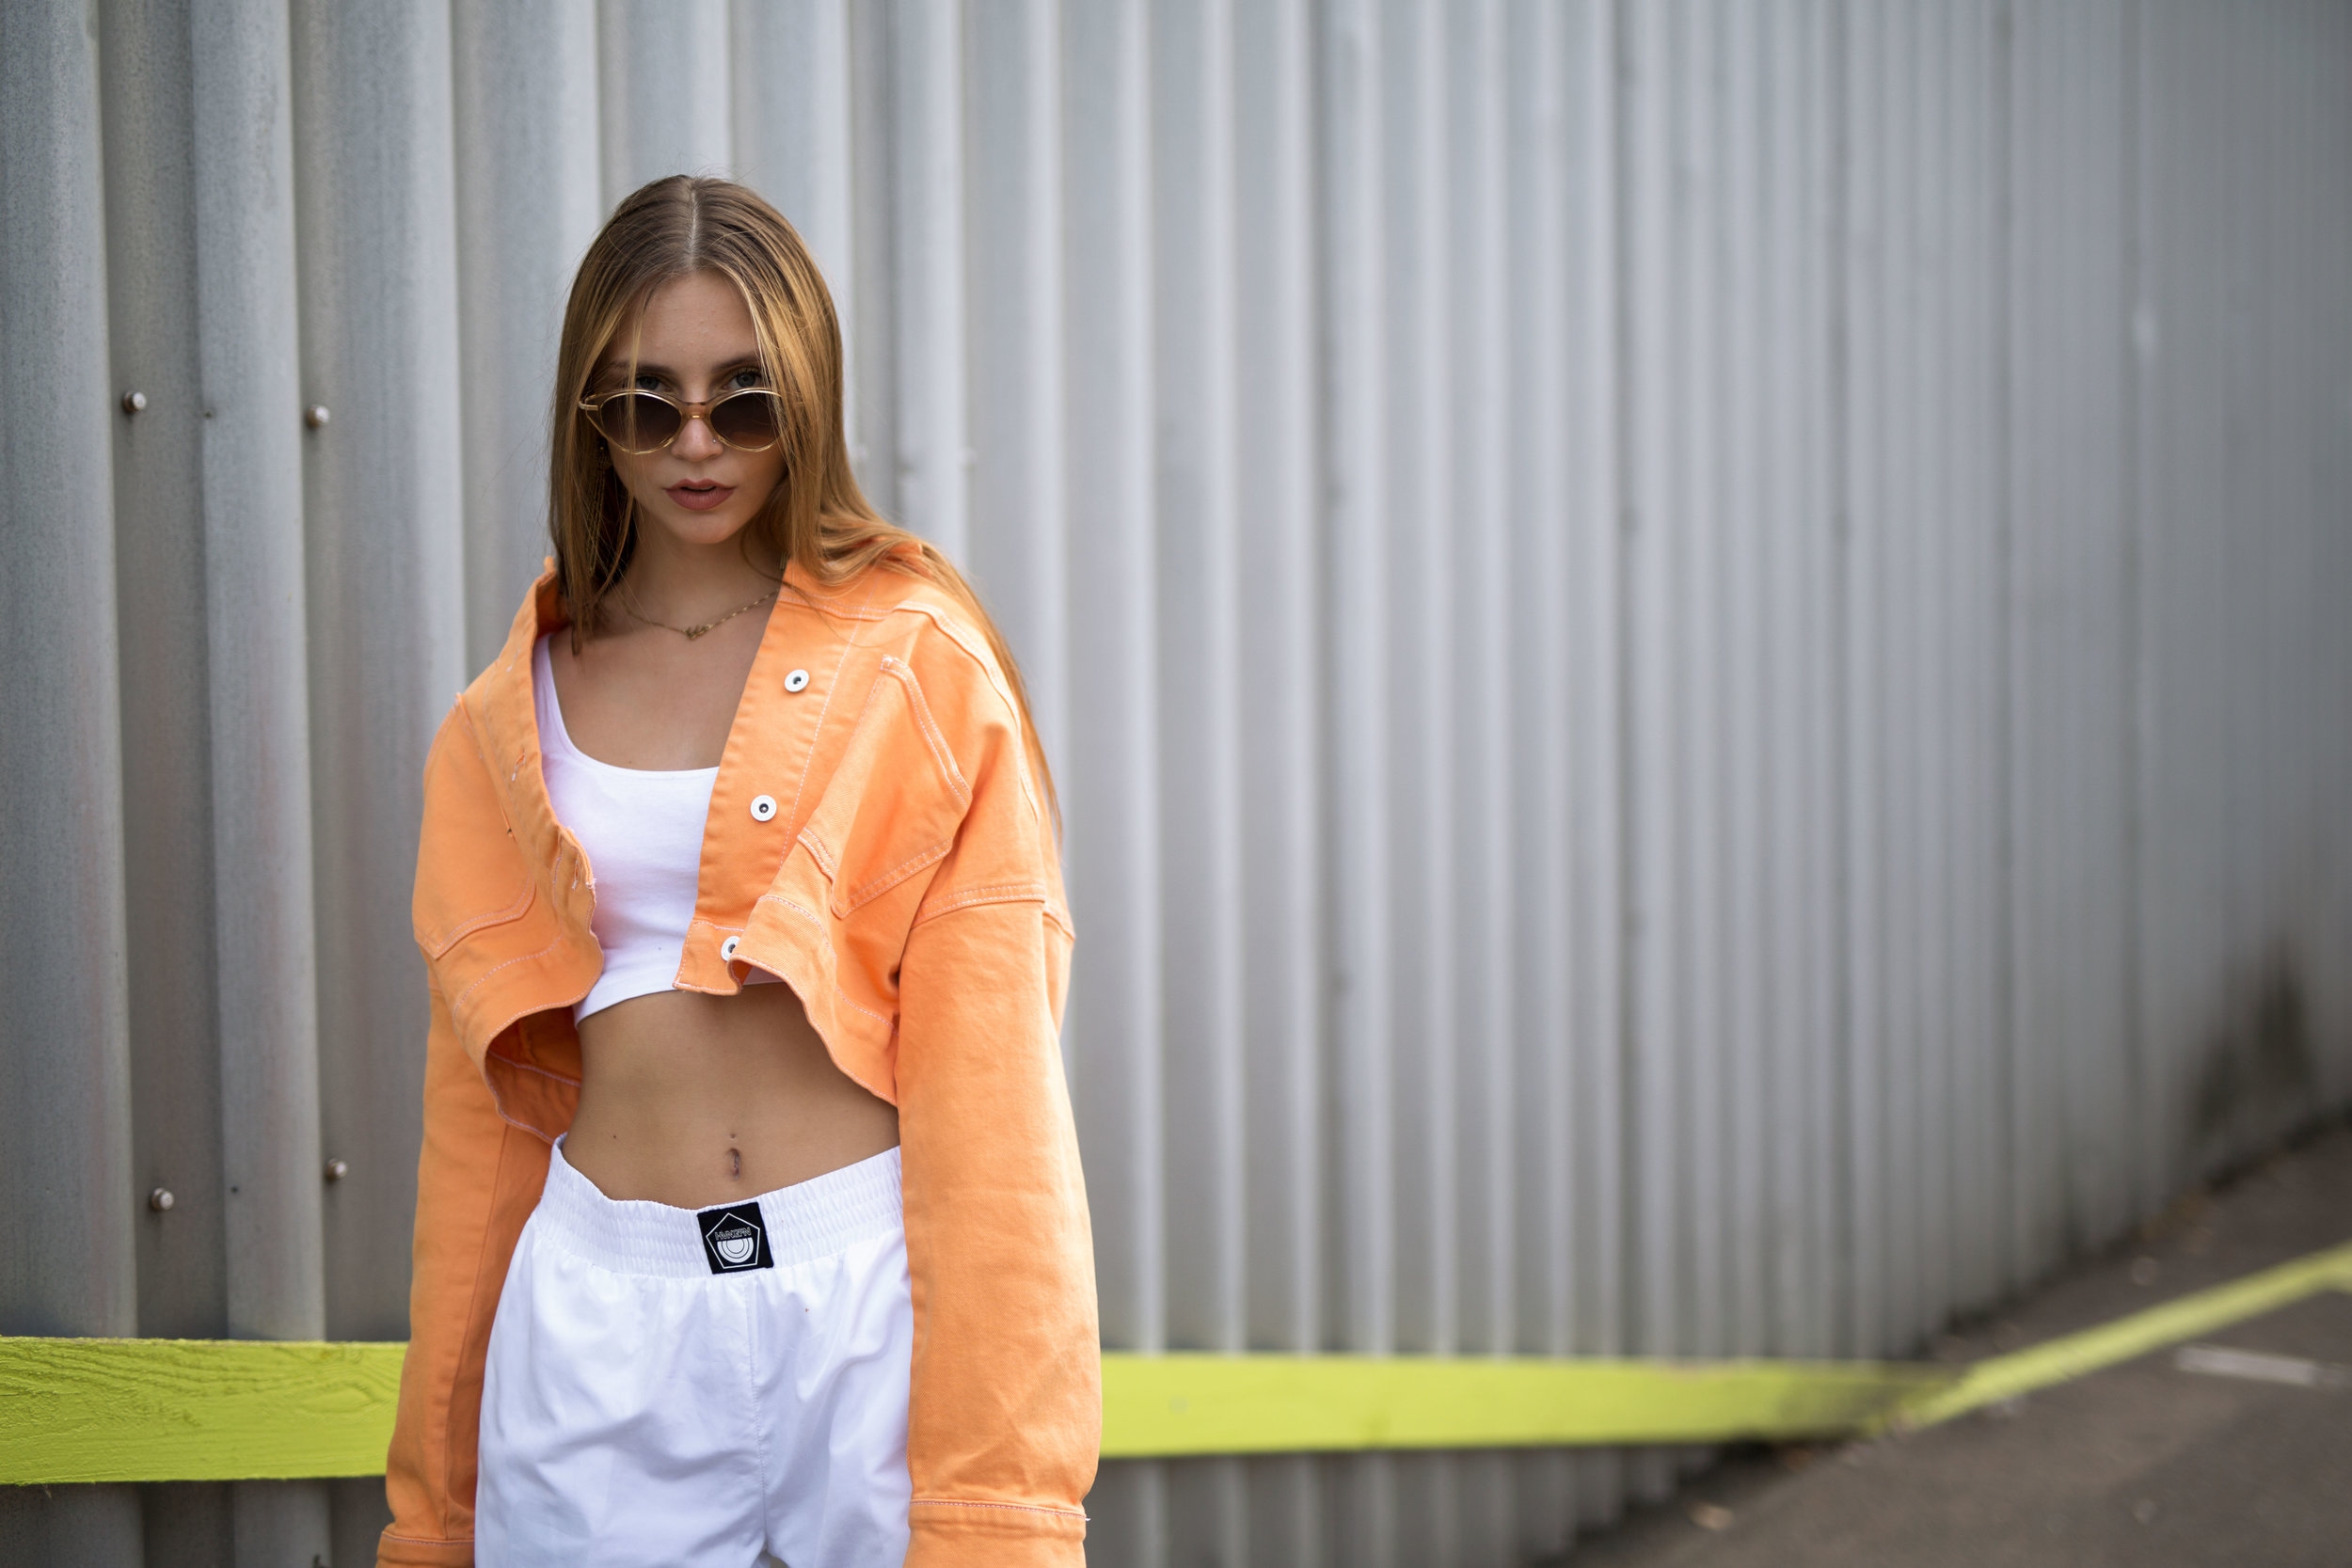 TheStreetland_Copenhagen_Fashion_Week_SS19_39.jpg